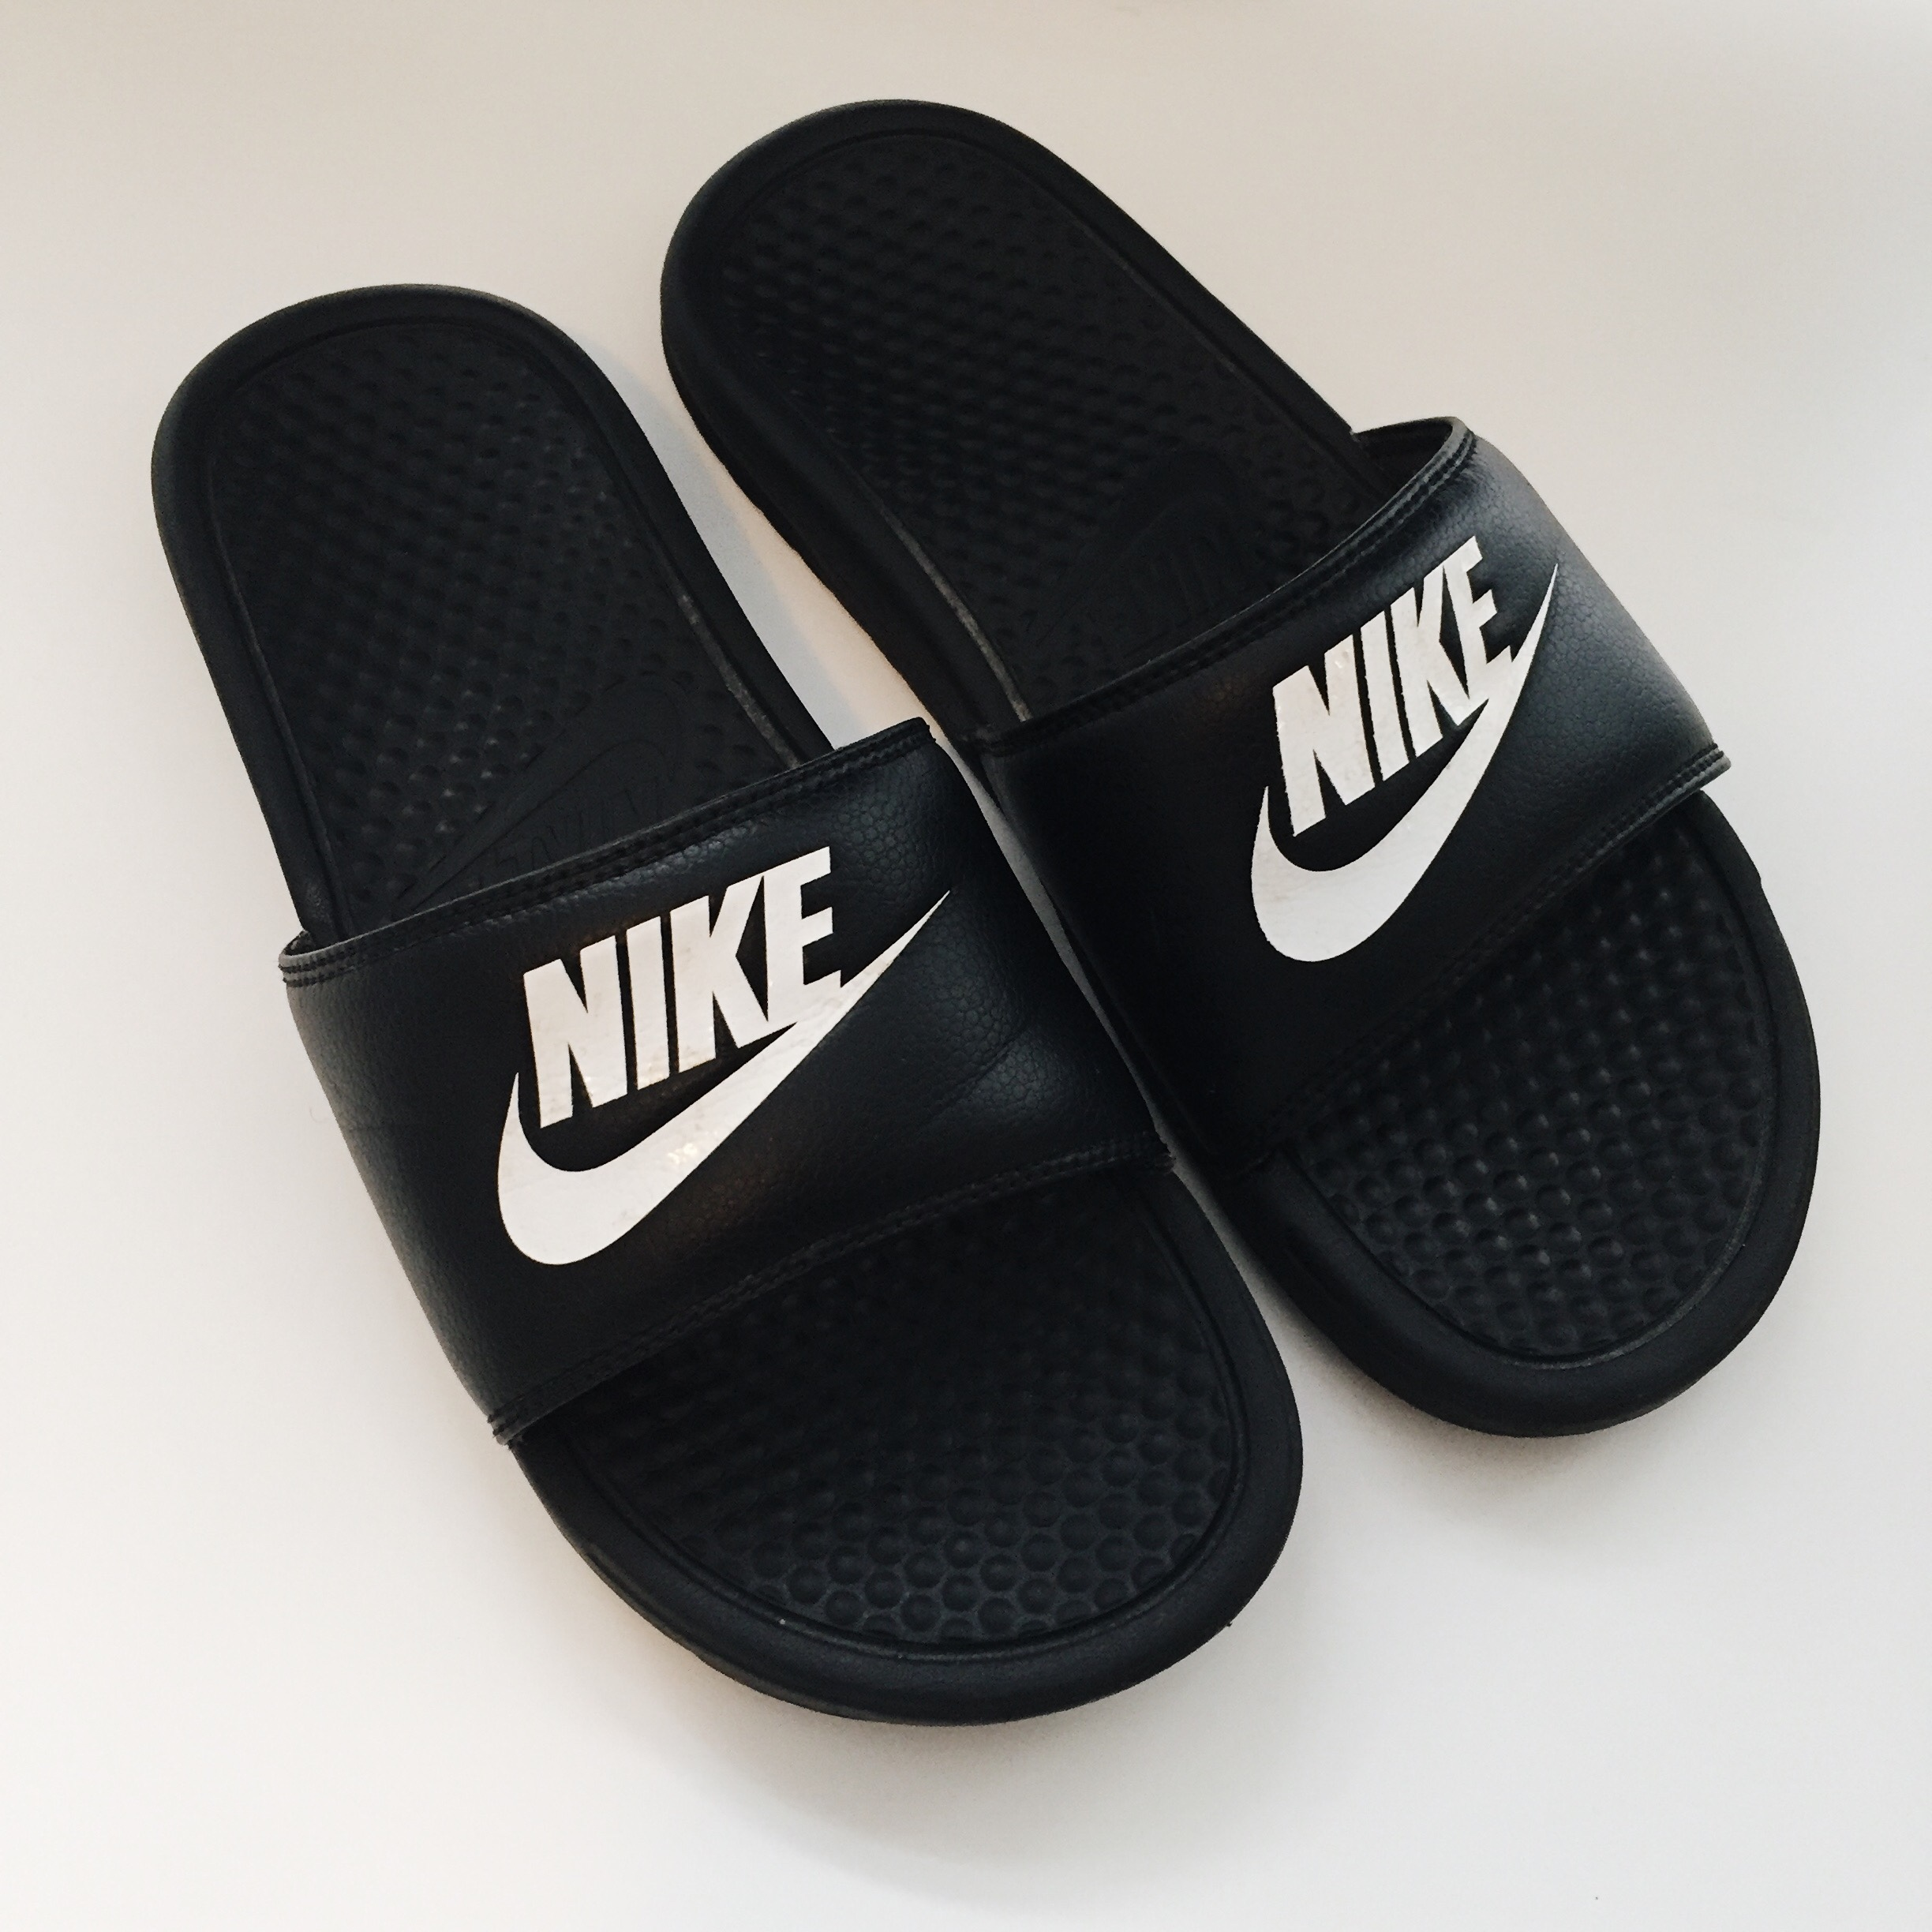 al por mayor elegir original personalizadas Nike pool slides size UK 6 9/10 condition. - Depop